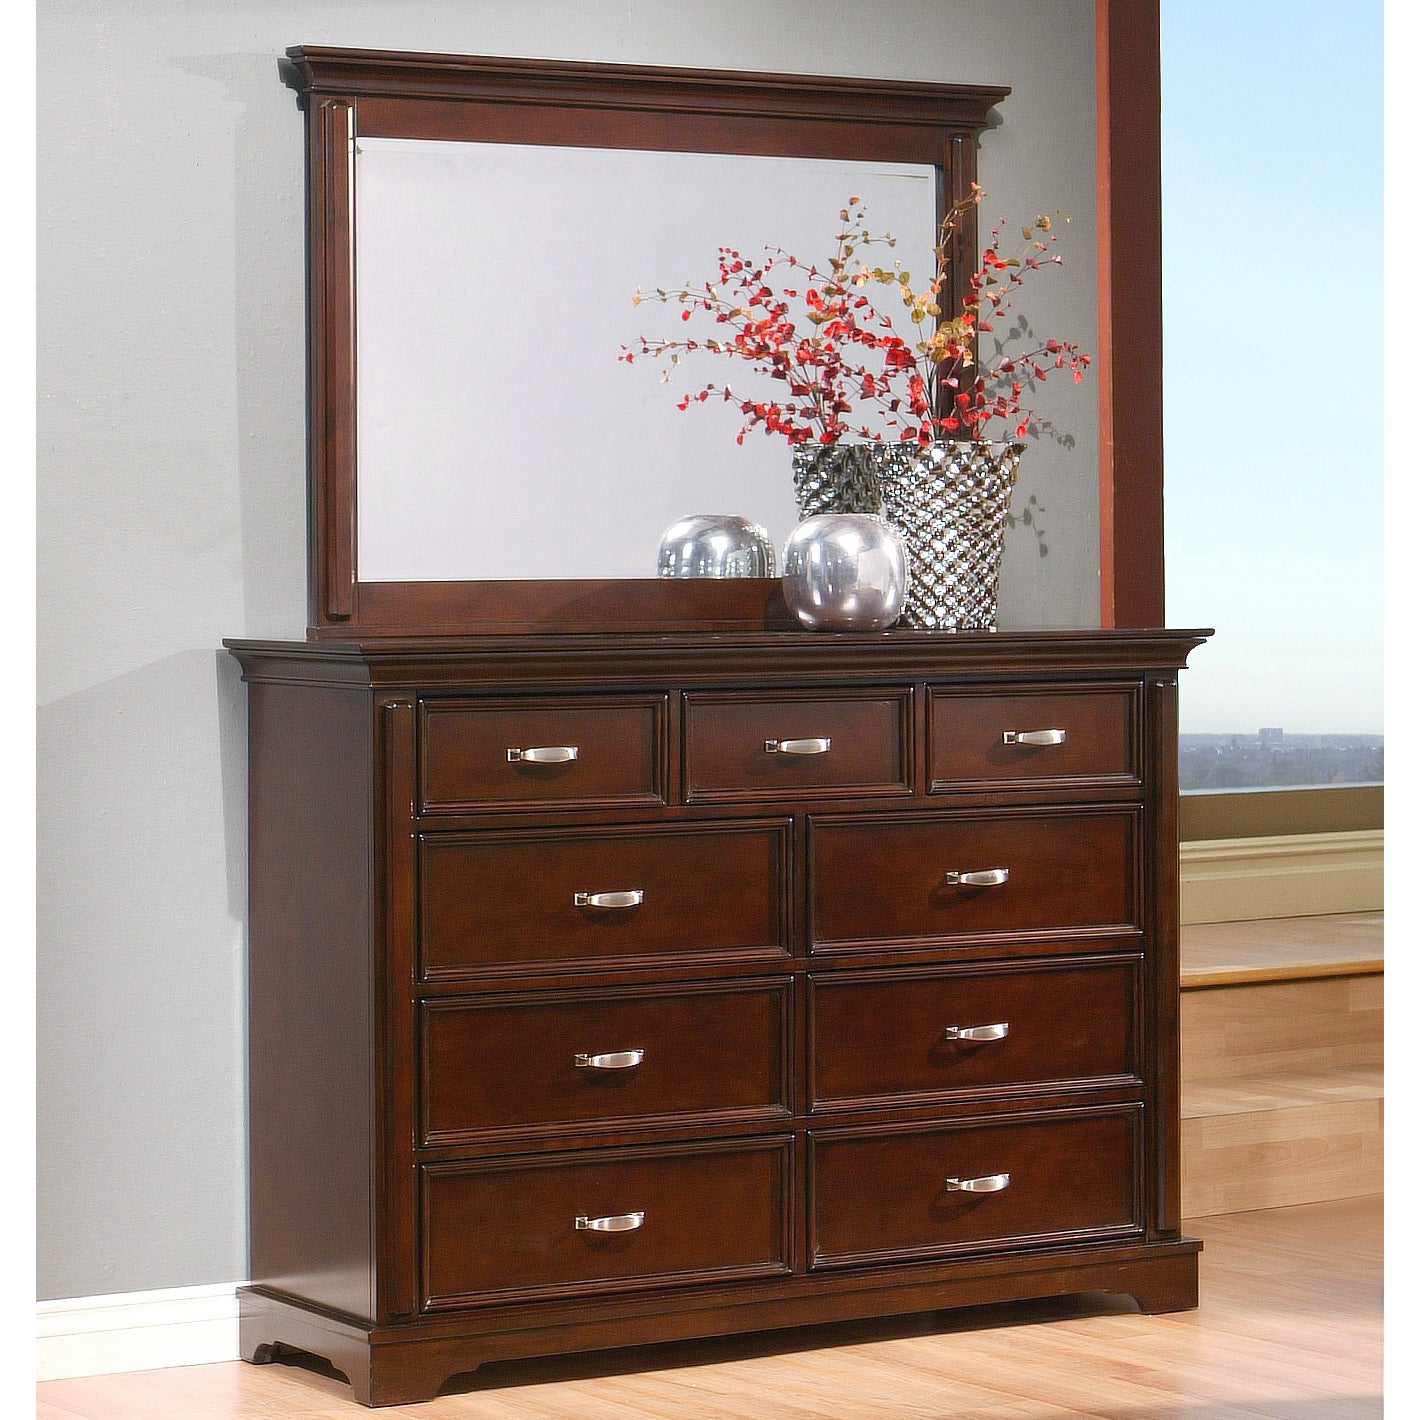 Abbyson Tuscany 9 Drawer Dresser And Mirror Set Overstock 9242259